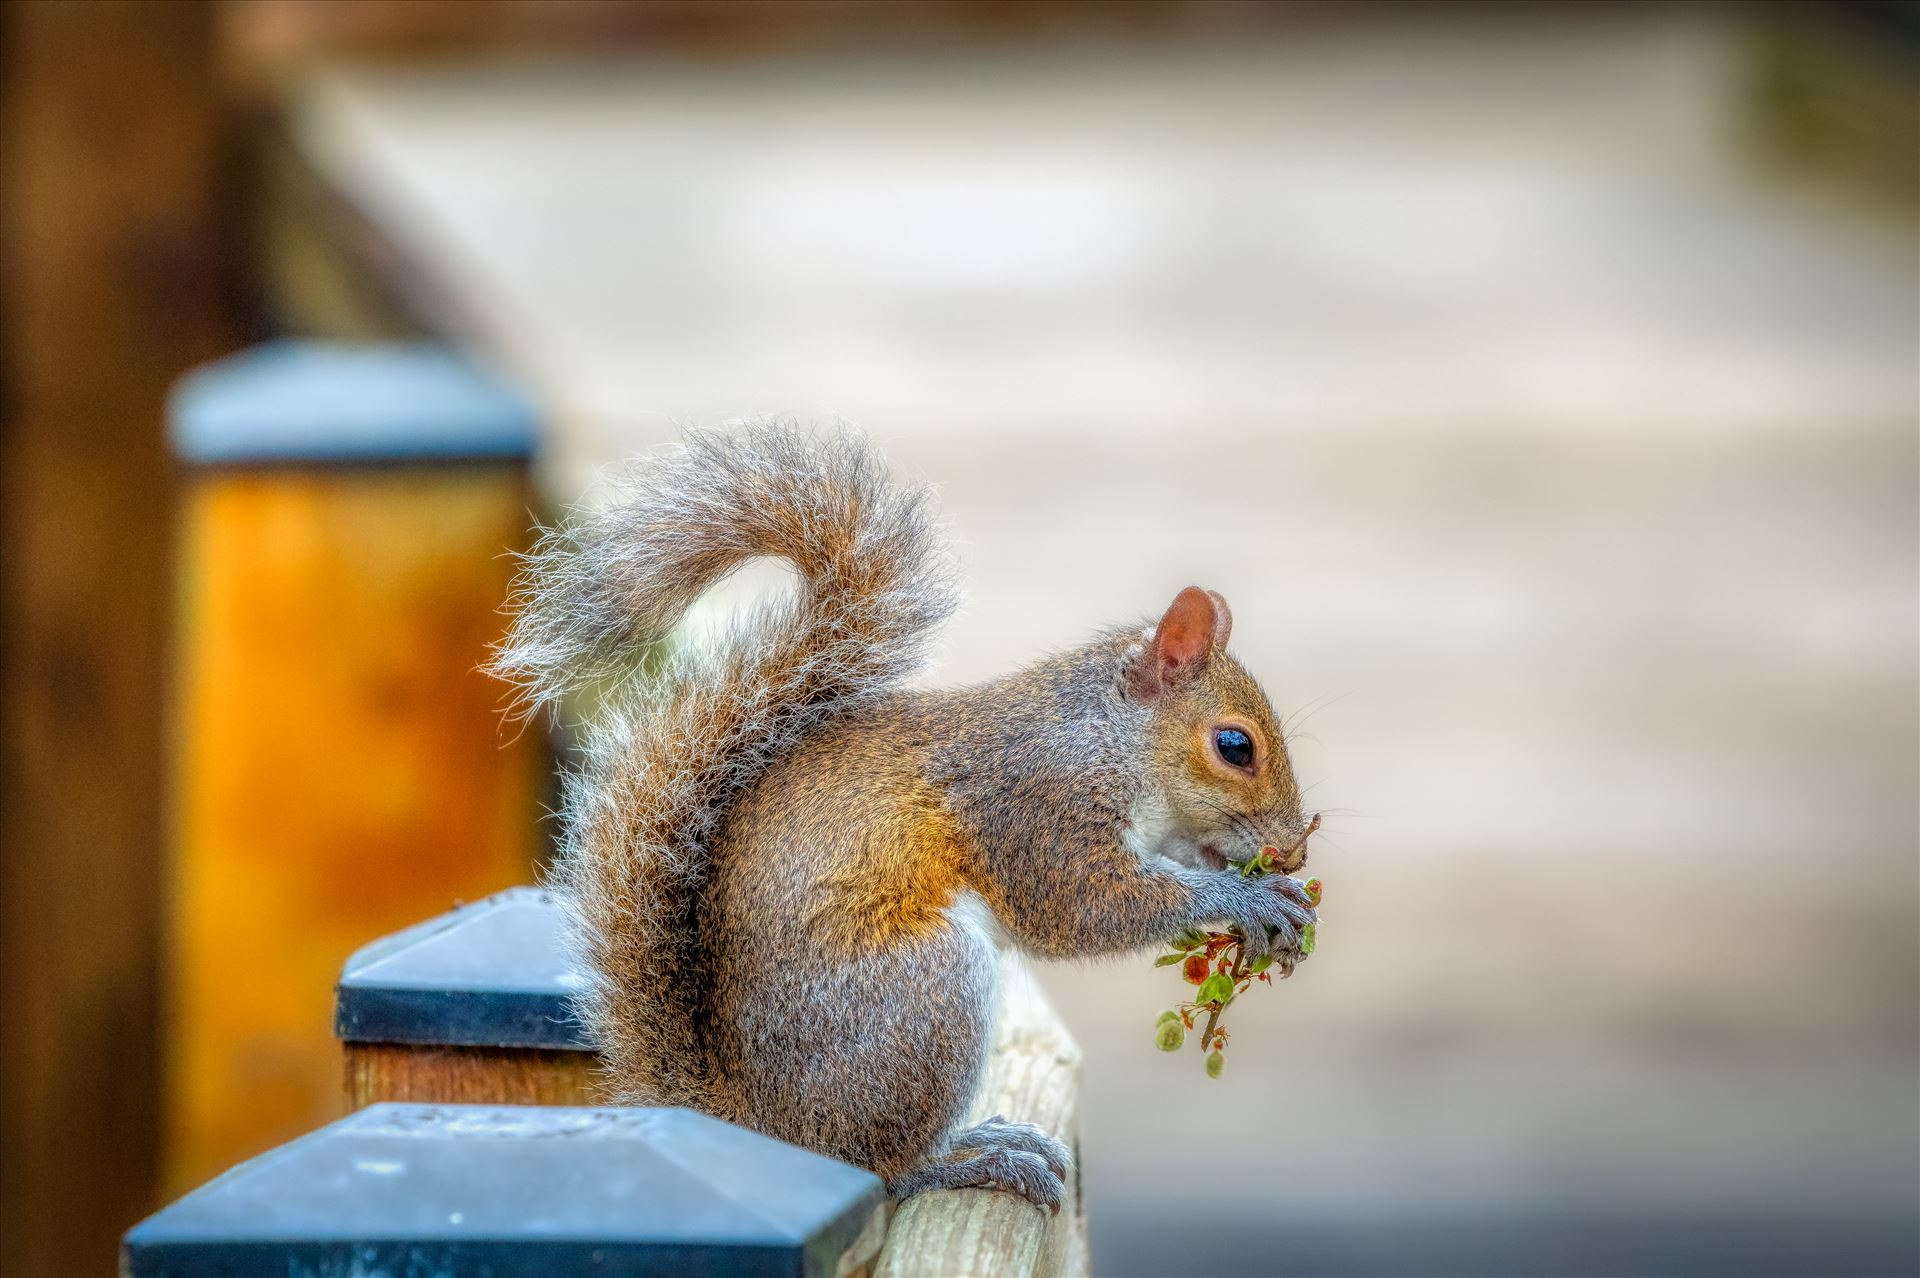 squirrels - animal, wildlife, rodent, fence, nature, cute, wild, outdoor, squirrel, outdoors, furry, portrait, close up, squirrels, eastern gray squirrel, gray squirrel, fluffy, grey squirrel, eastern grey squirrel, closeup, tail, bushy, grey,